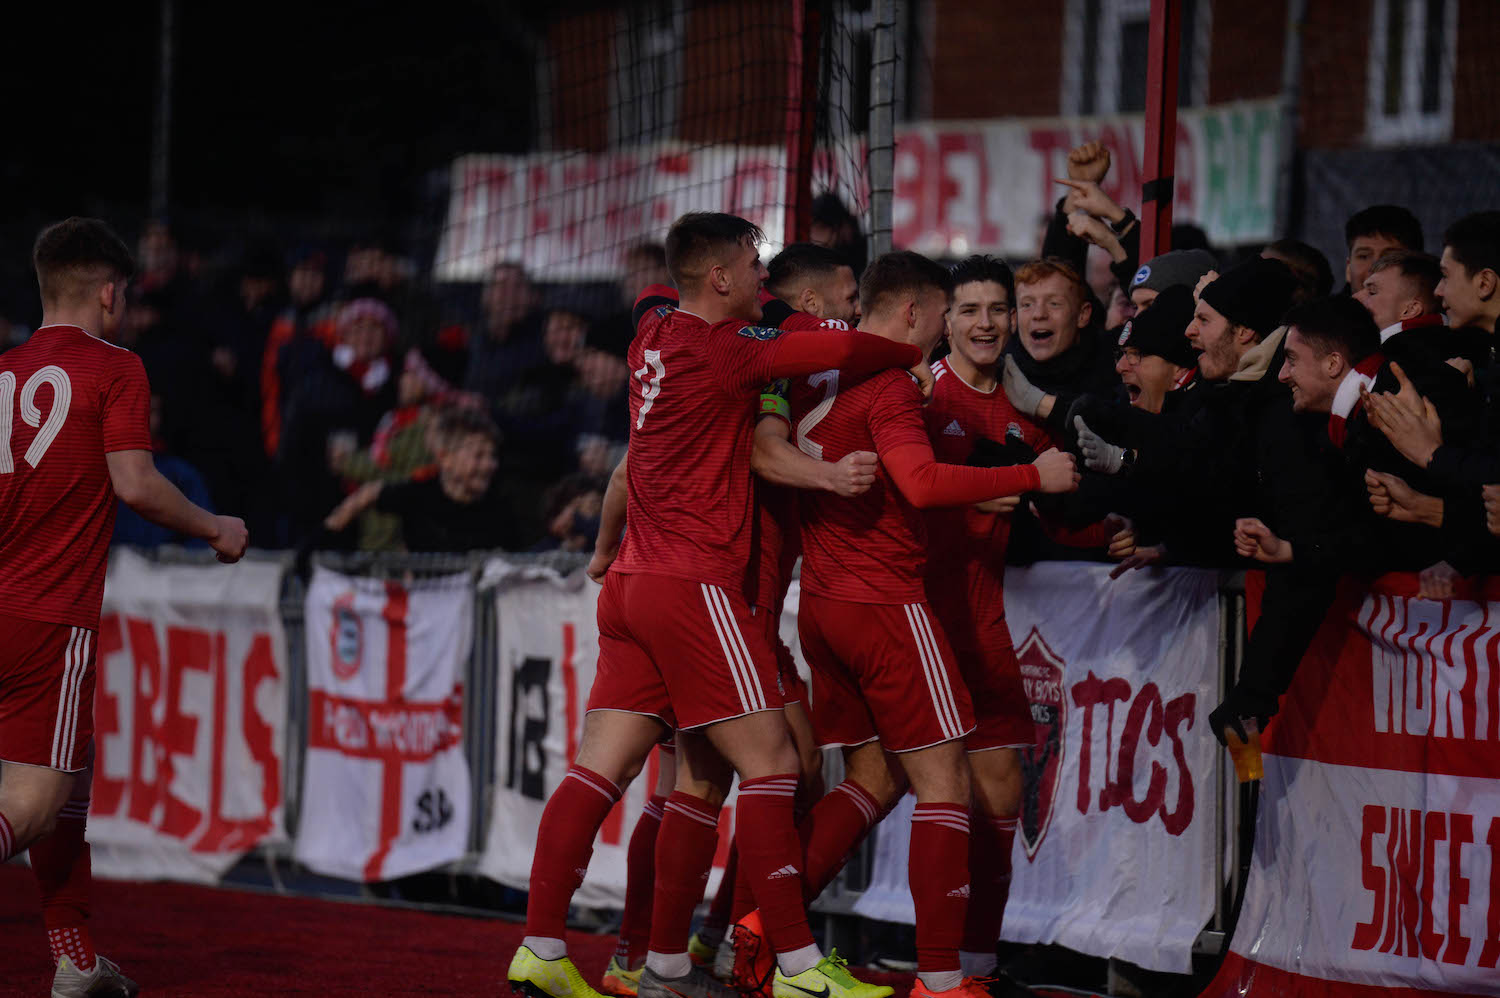 Read the full article - Reds Take The Sting Out Of Hornets